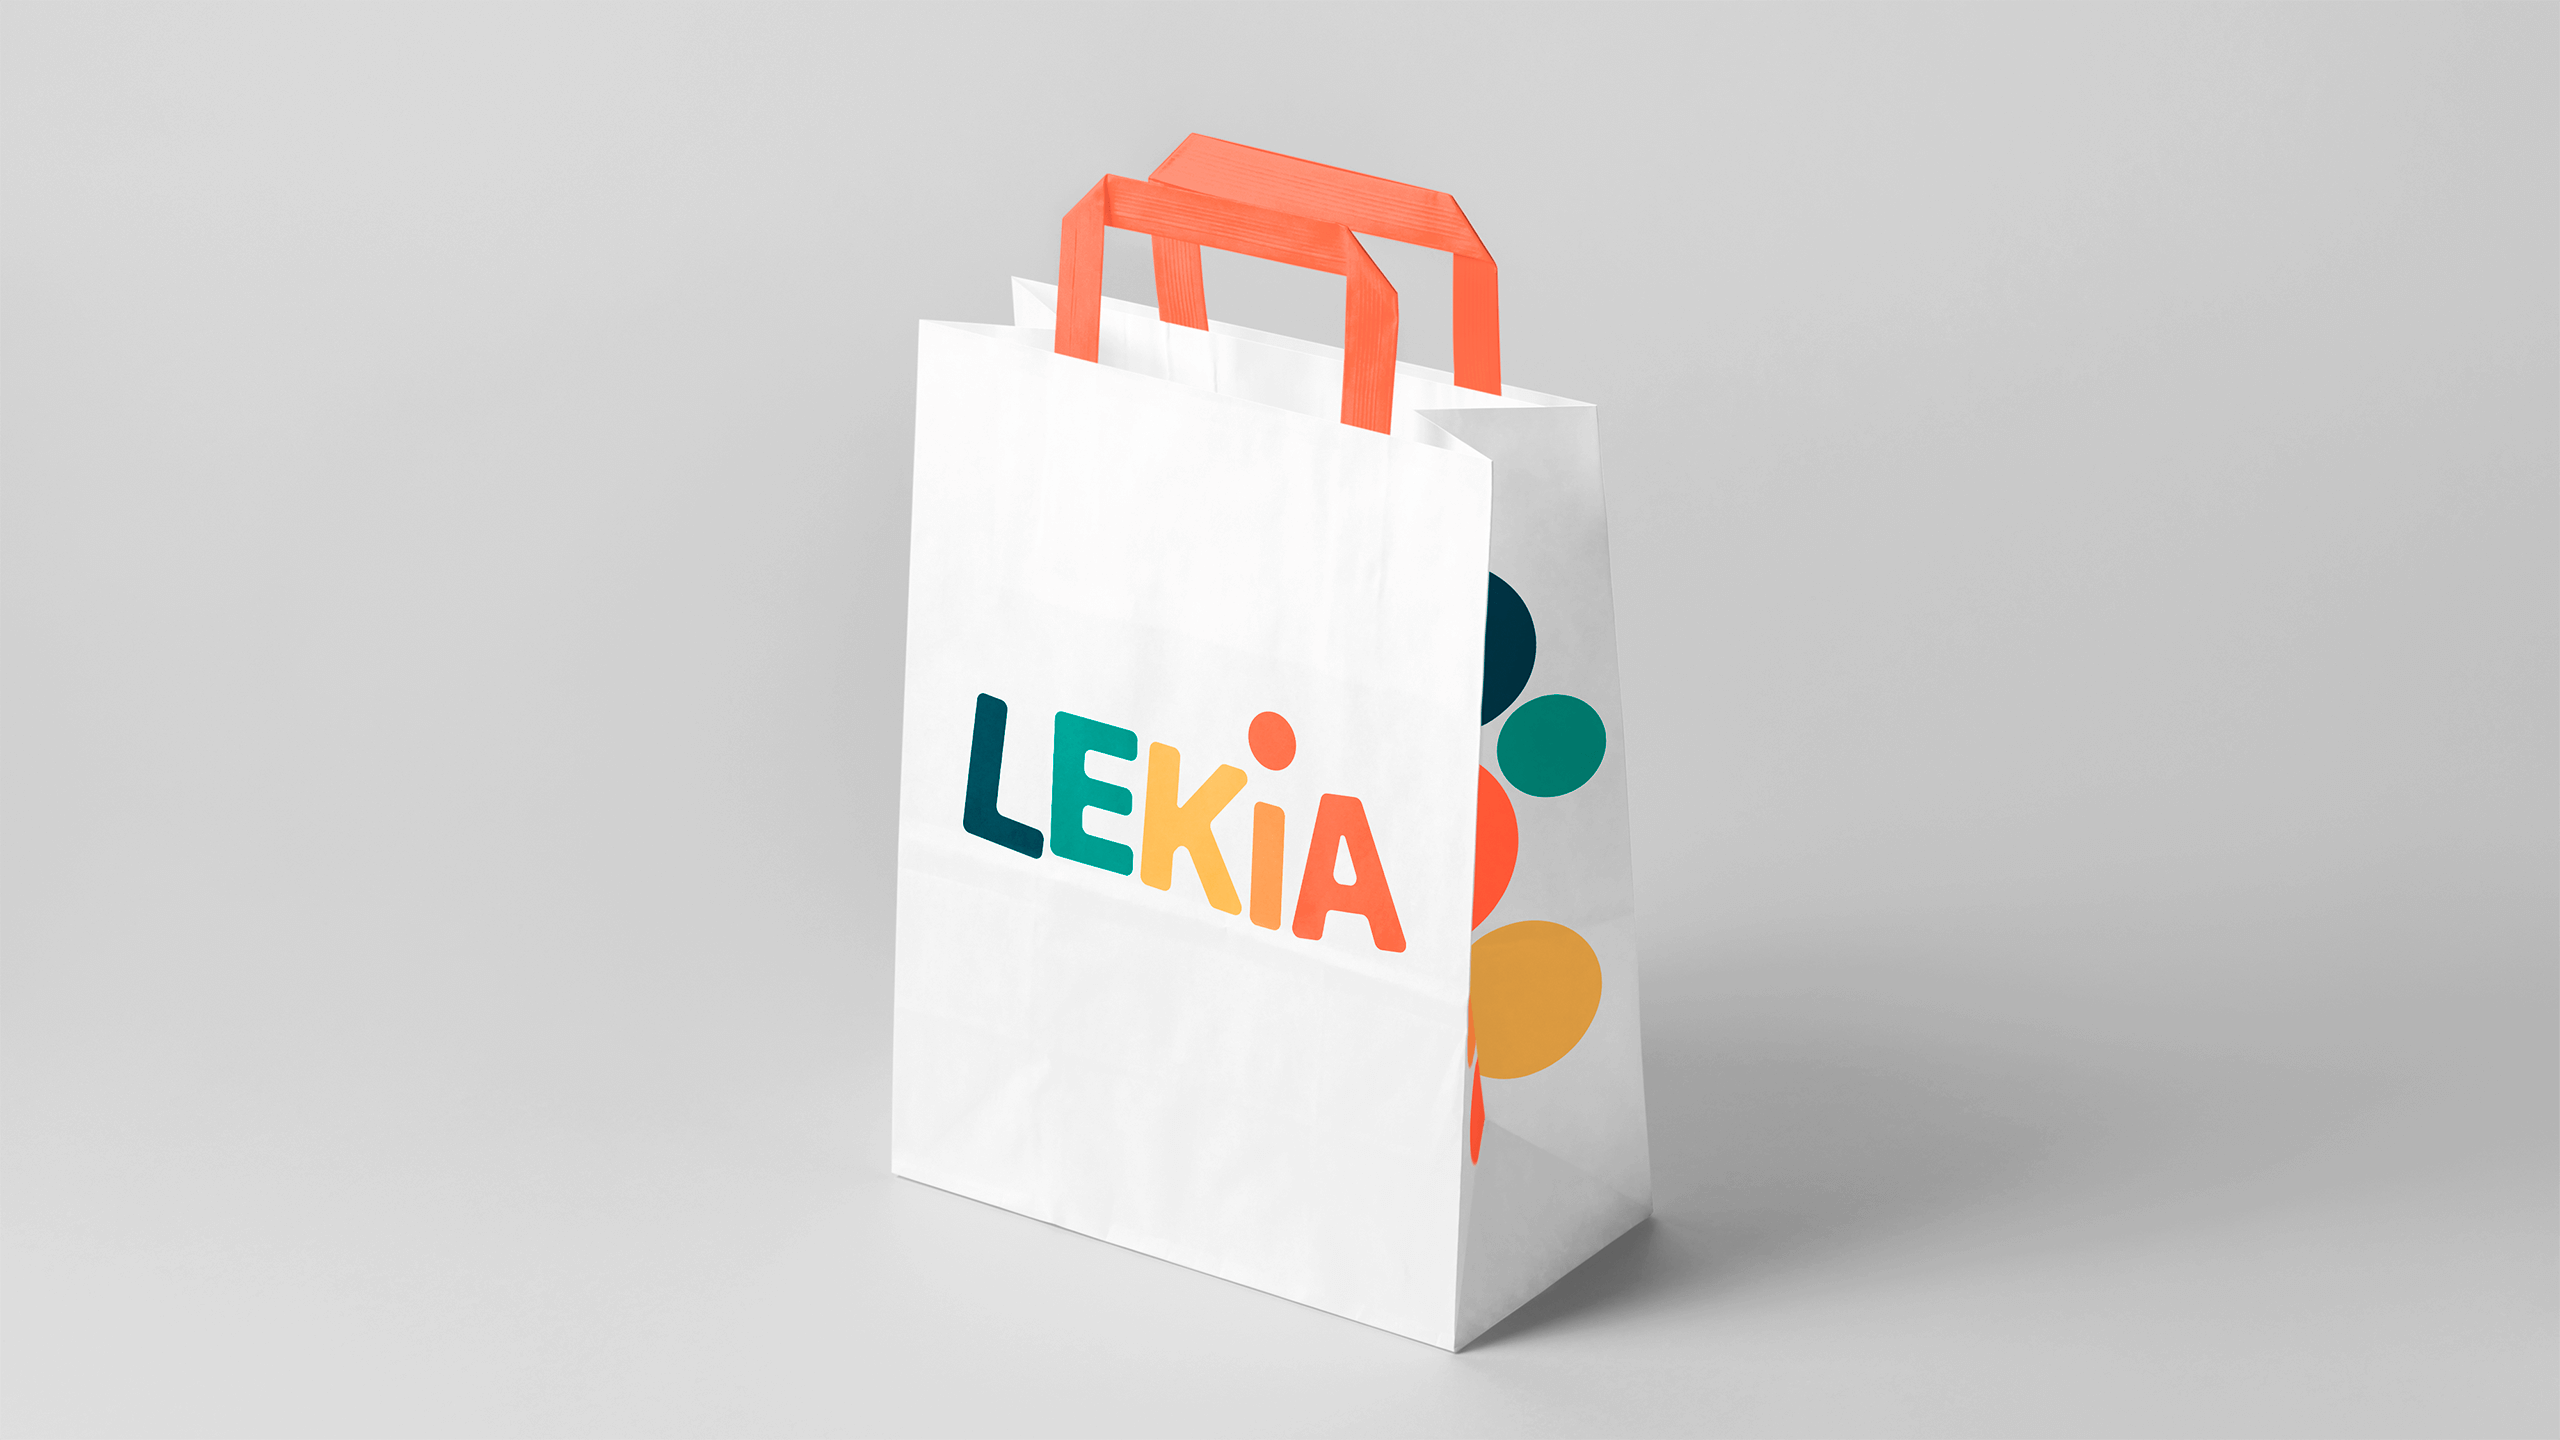 Lekia brand and logo design